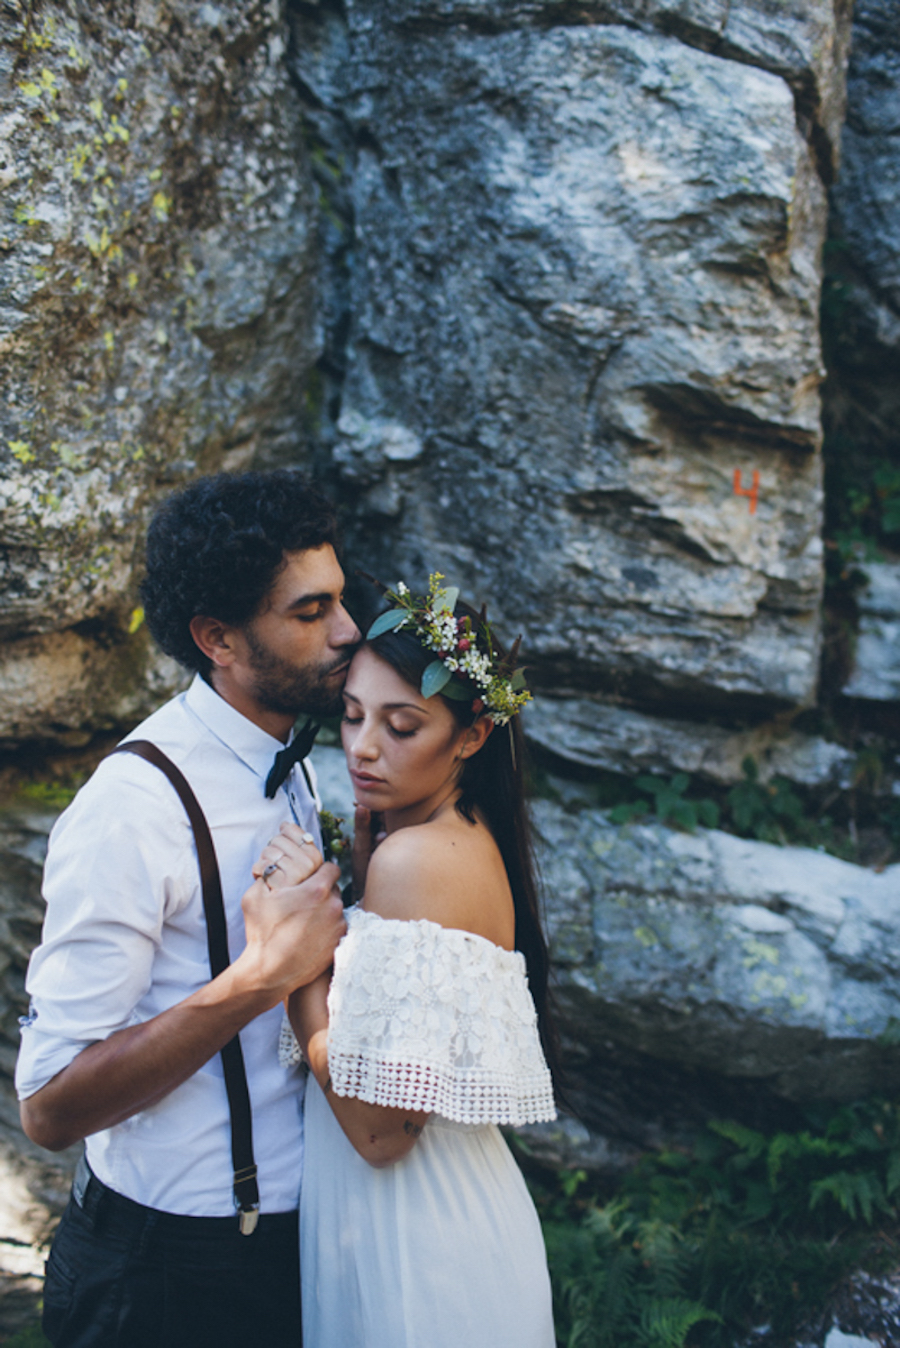 Matrimonio Bohemien Wedding : Un matrimonio boho chic nel bosco wedding wonderland